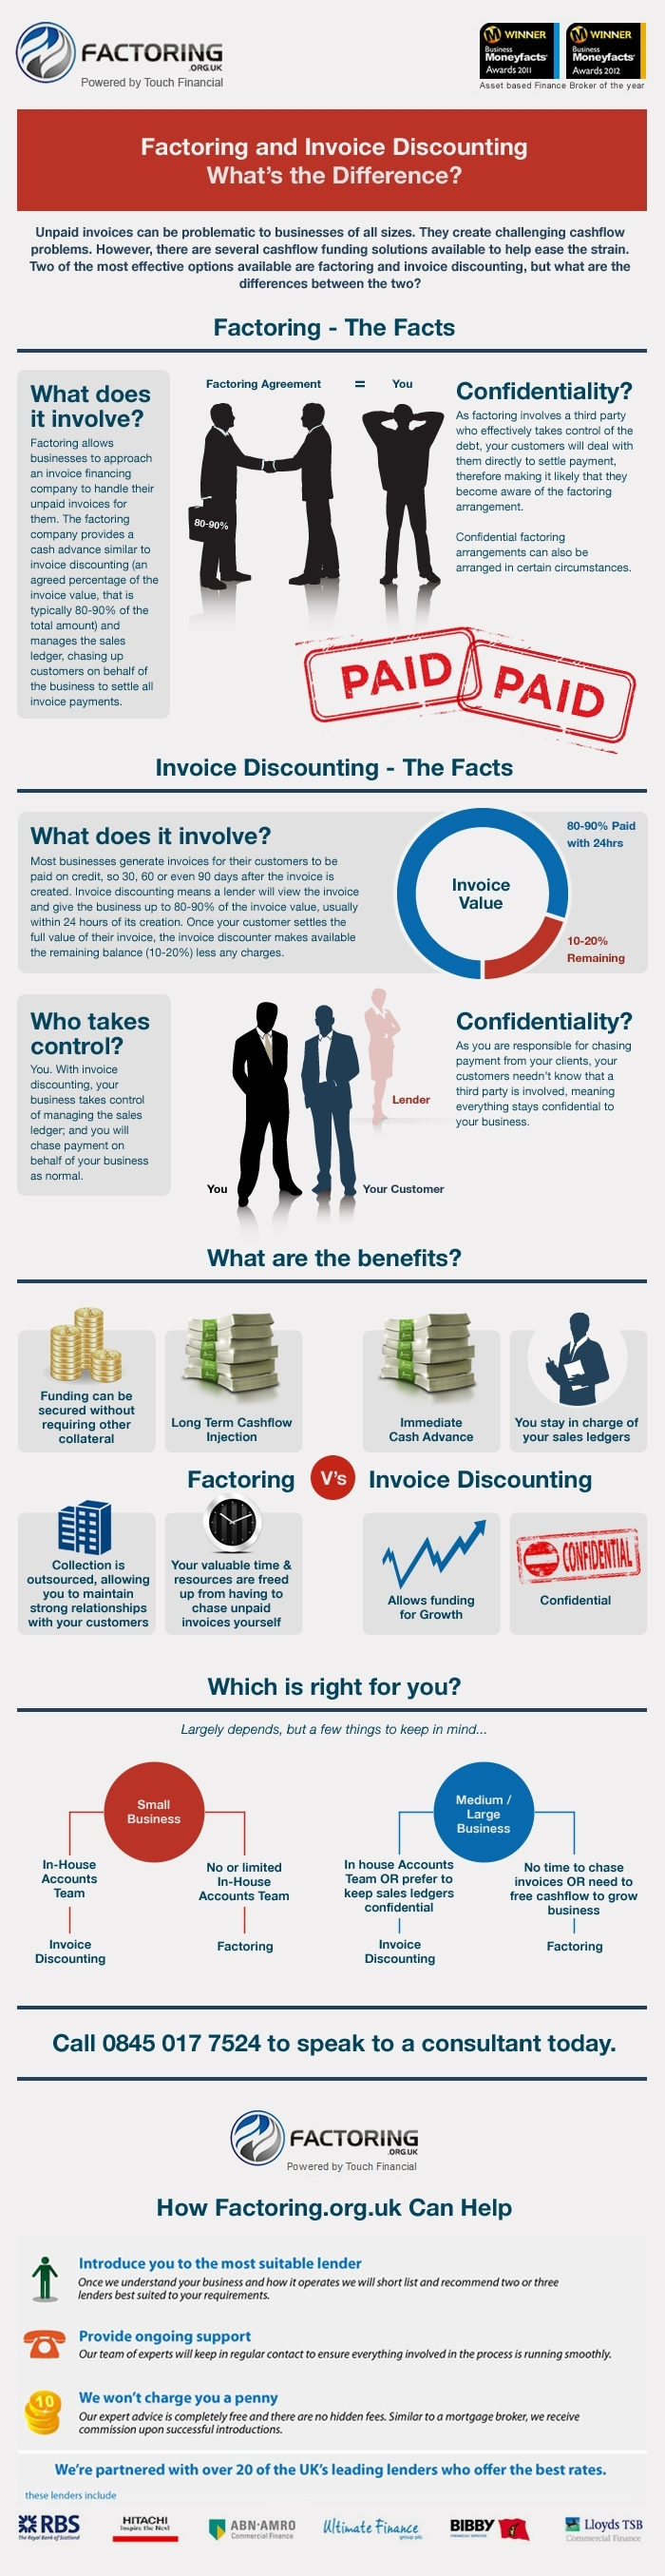 factoring and invoice discounting invoice template free 2016 factoring invoice discounting